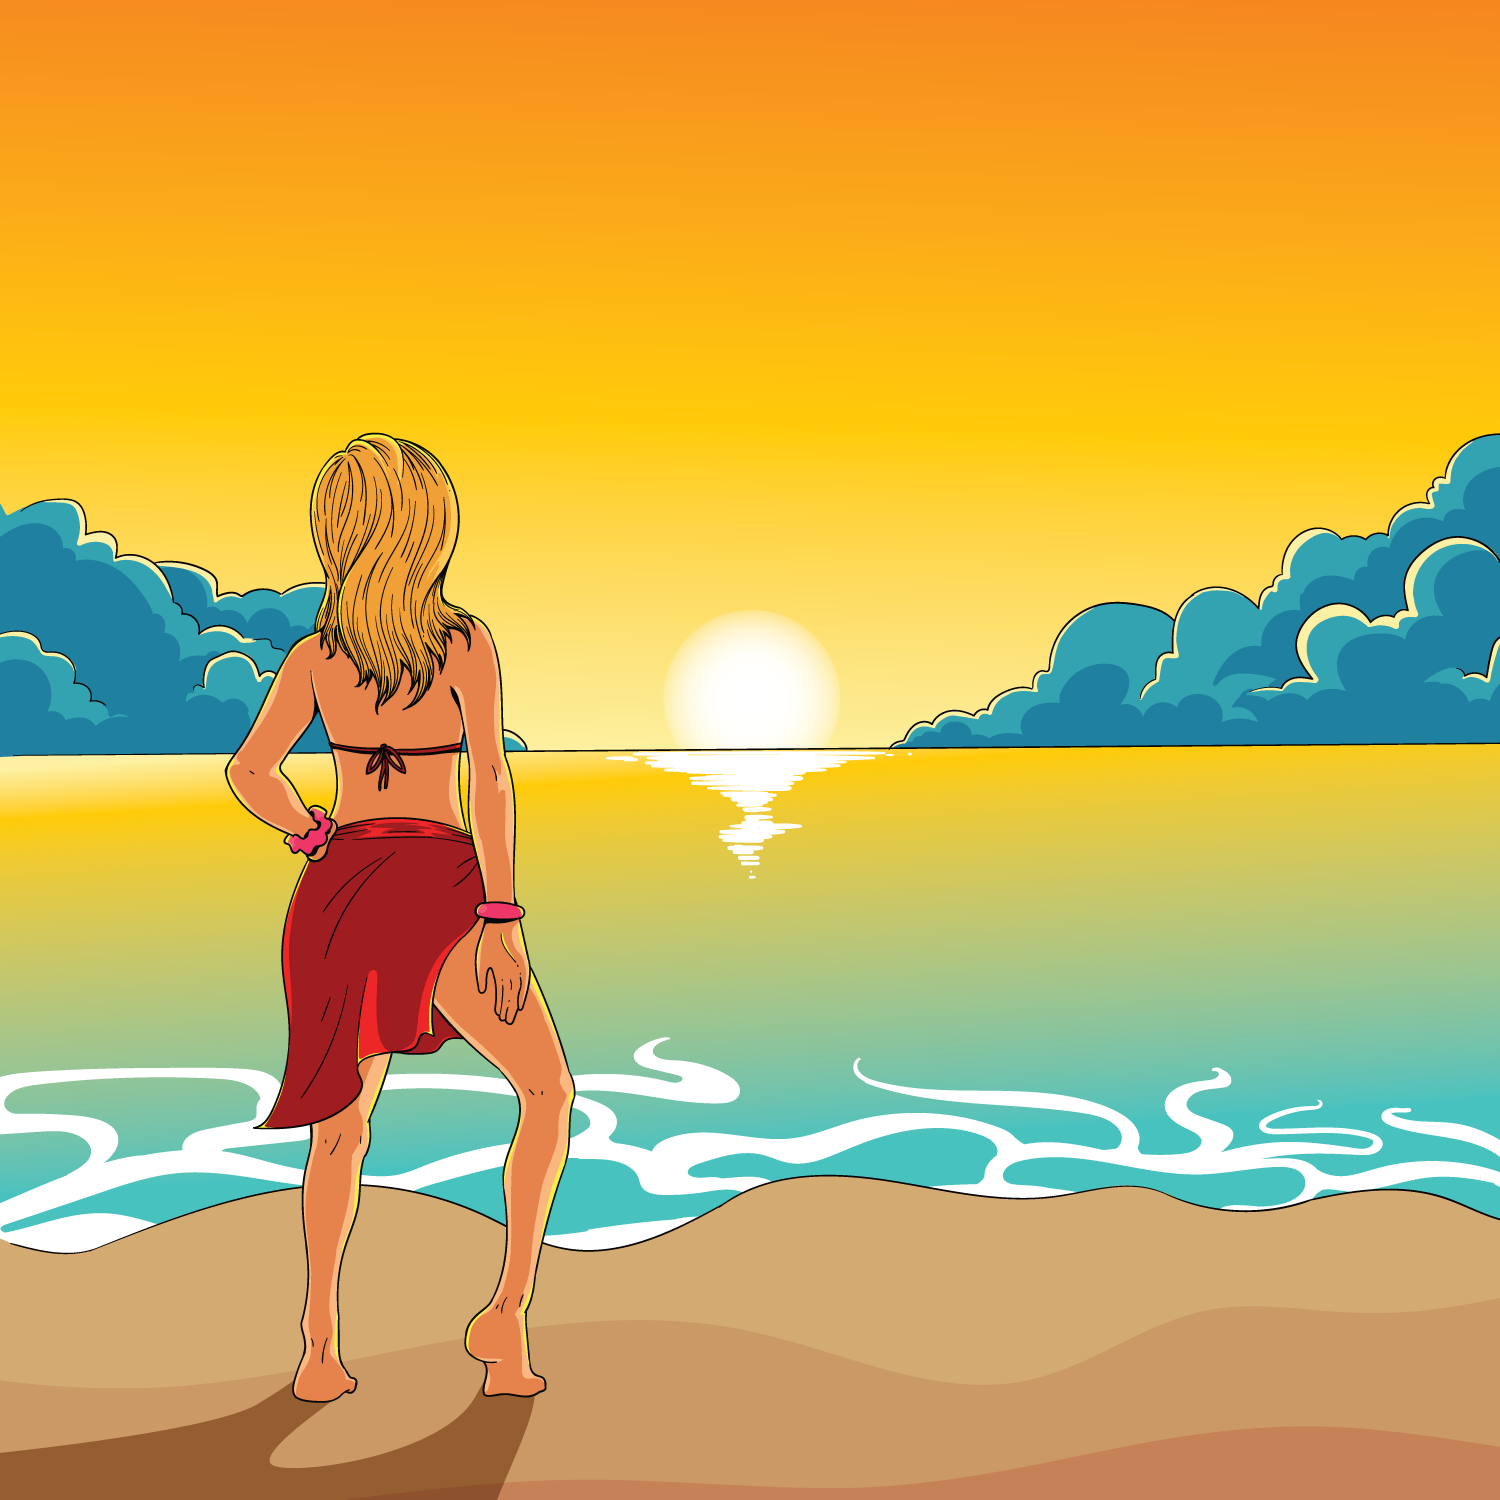 Woman With Beautiful Body In Bikini At Beach Stock Image: Download Free Vectors, Clipart